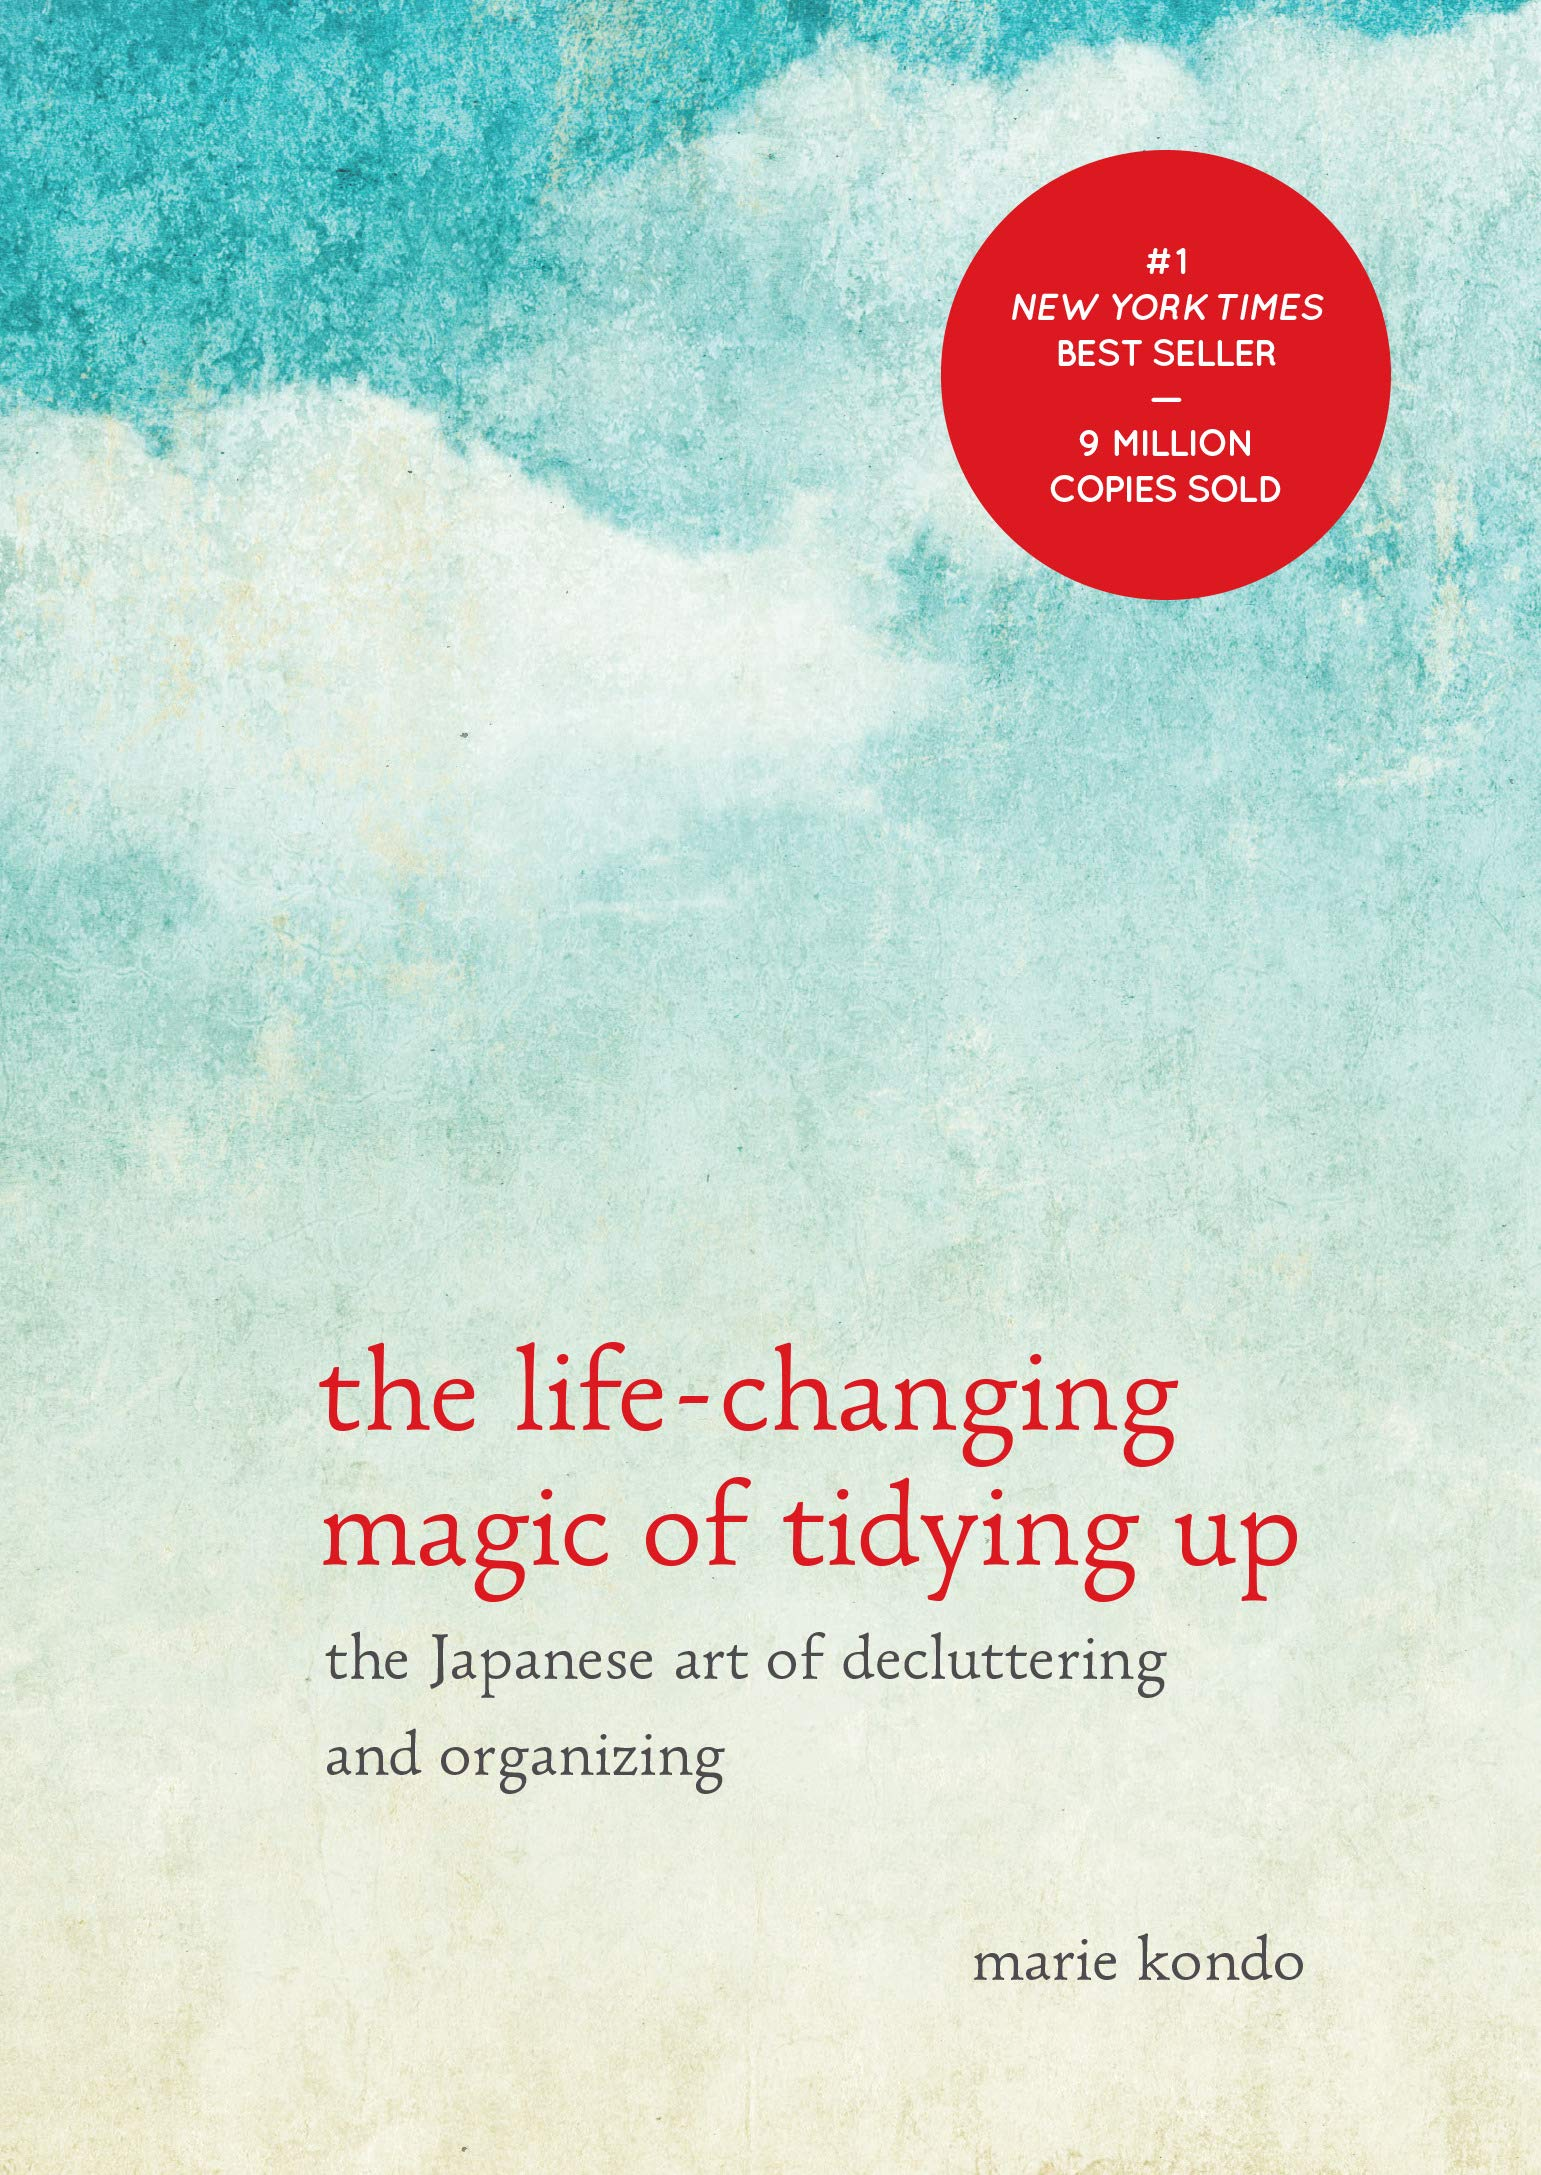 the-life-changing-magic-of-tidying-up-by-marie-kondo